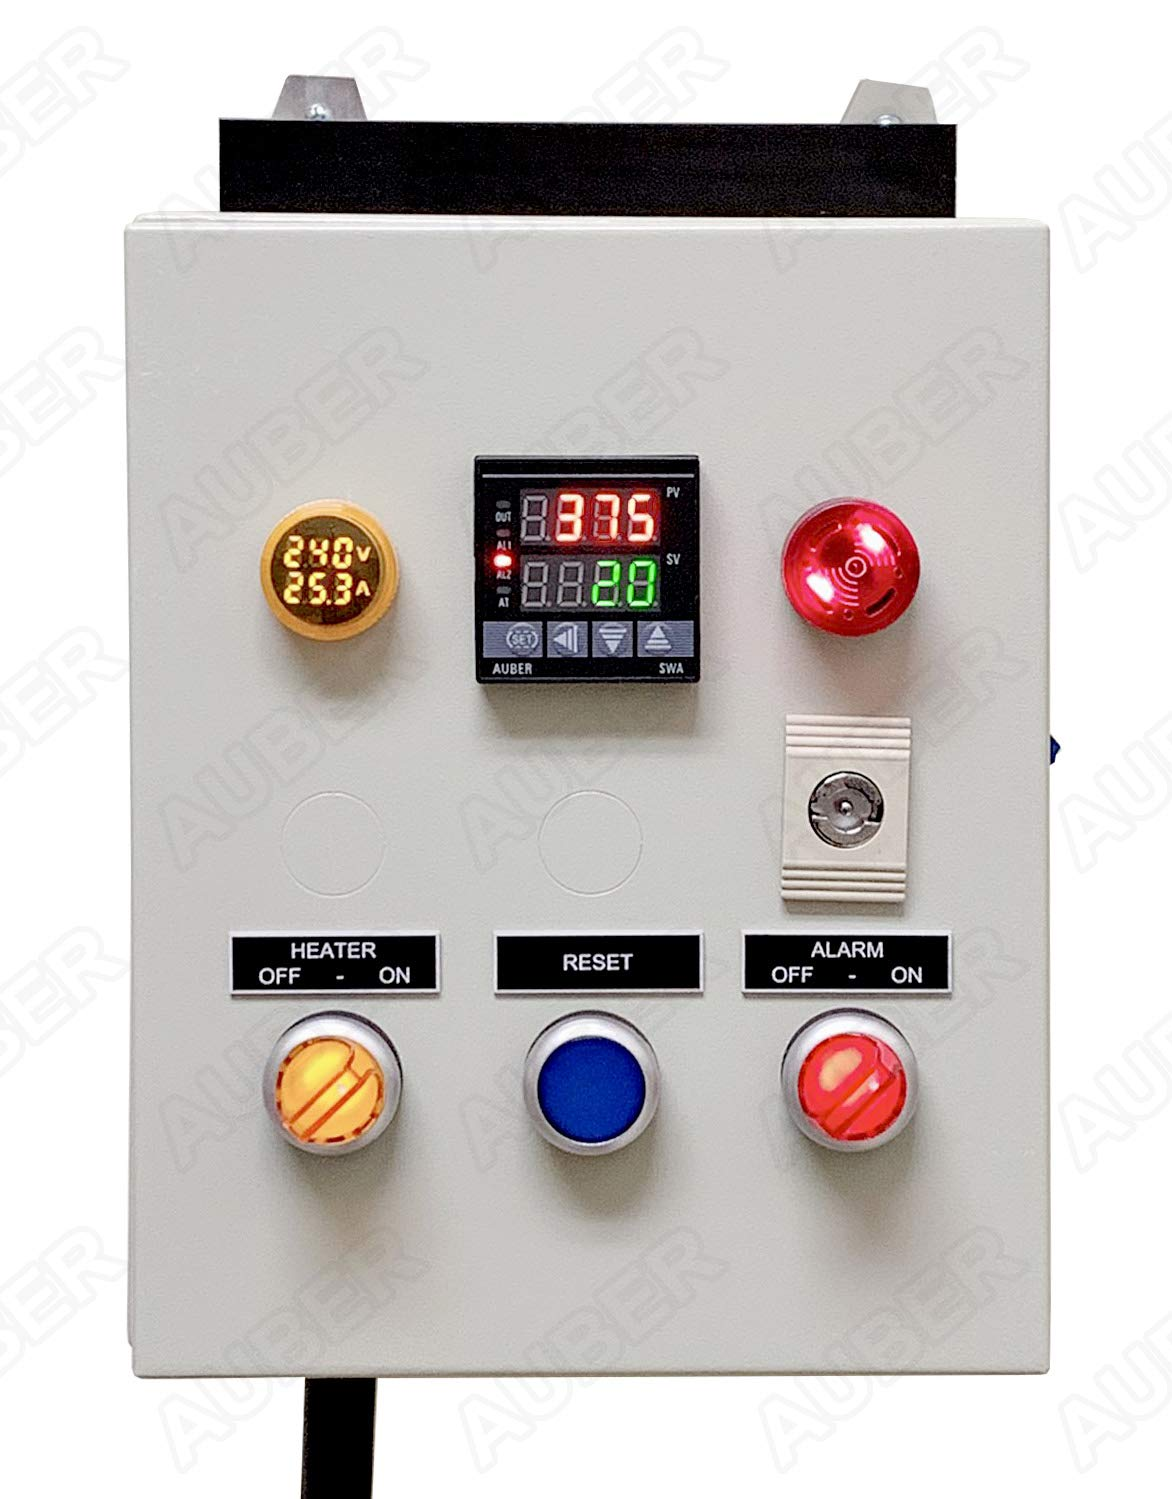 PCO101 Control Panel For Powder Coating Oven (240V 30A 7200W)